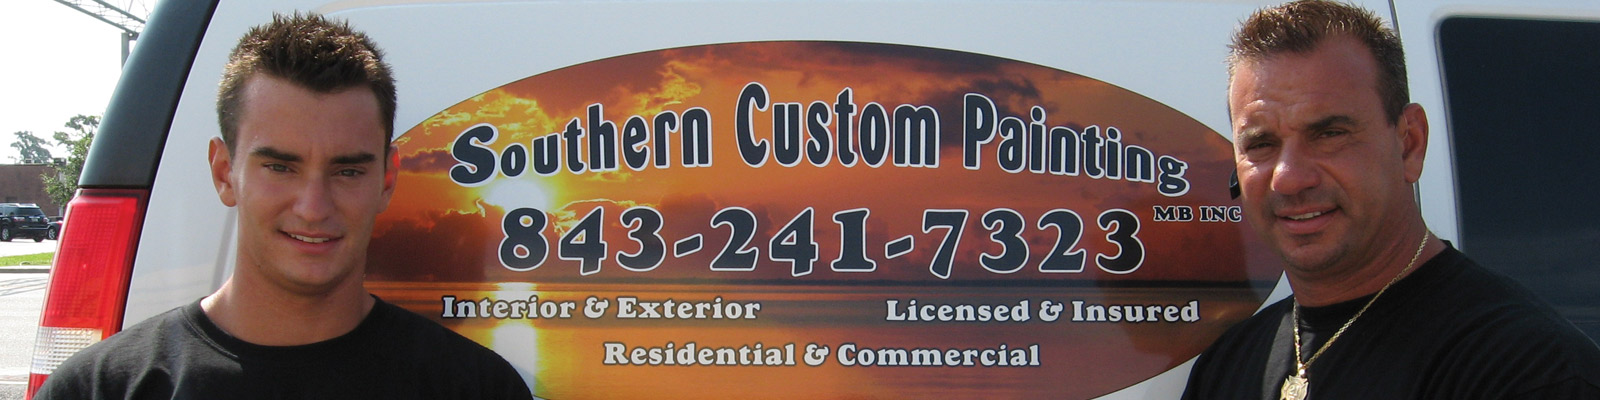 Myrtle Beach Painting Company